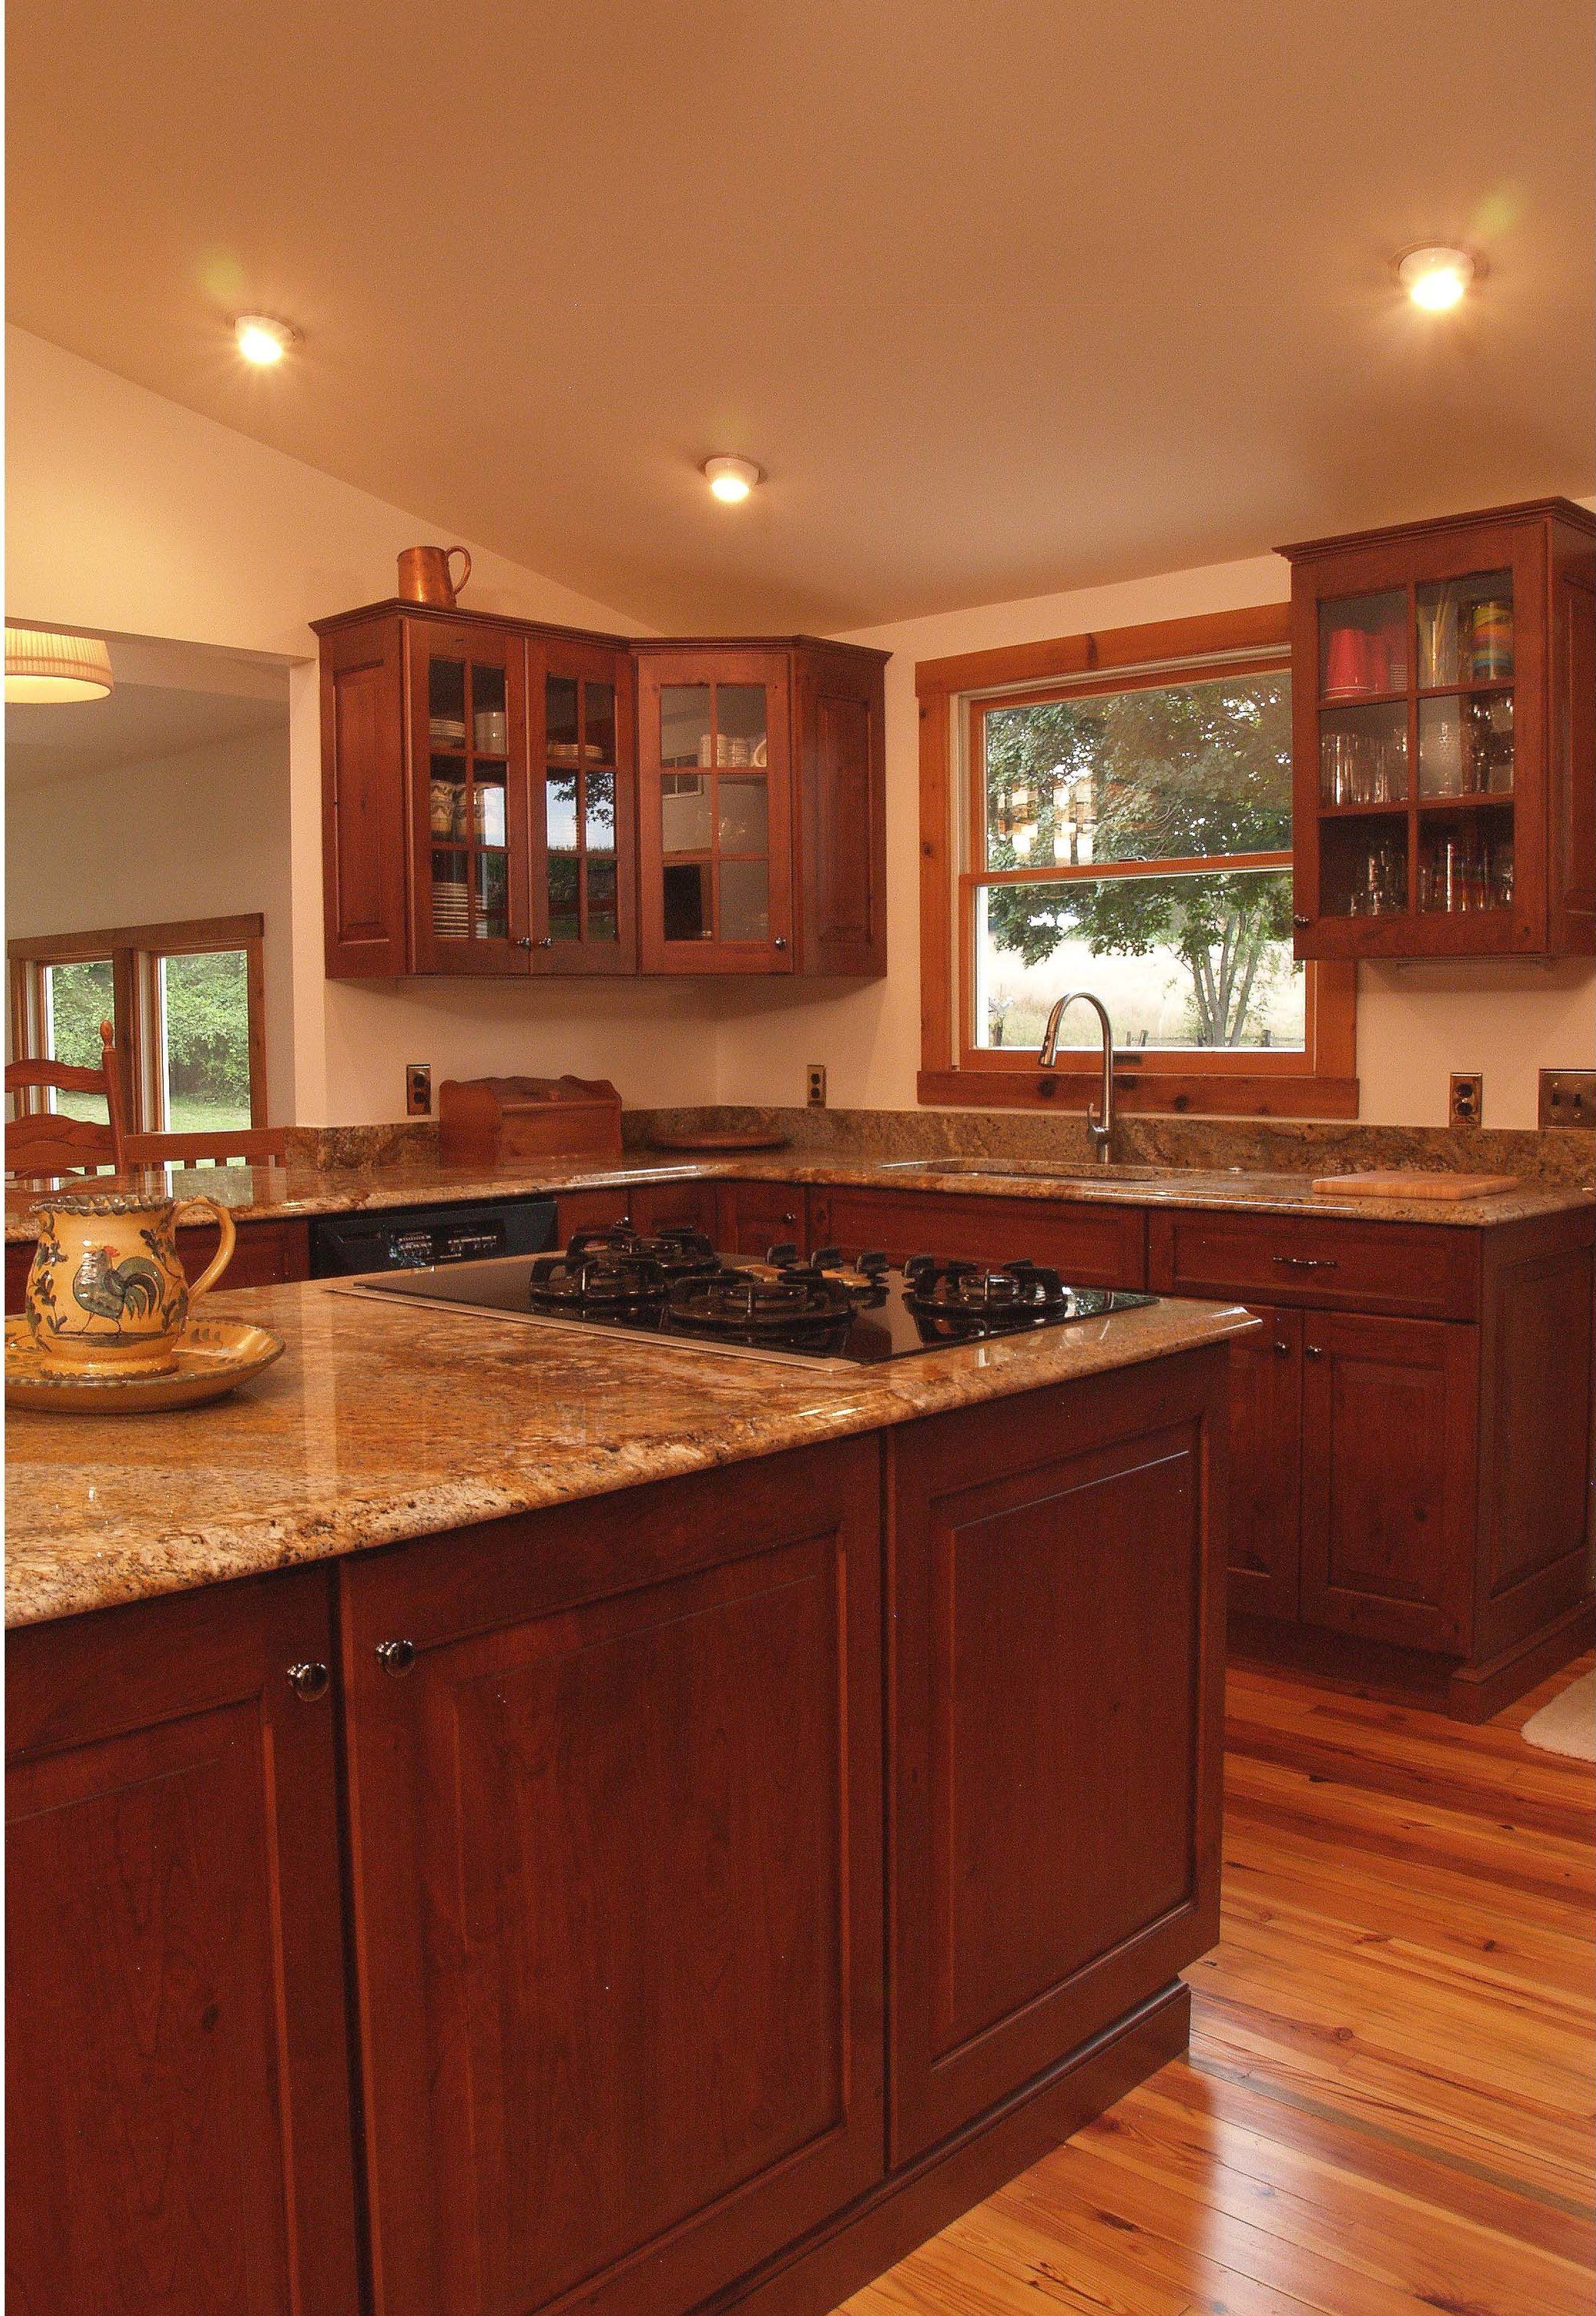 cherry wood kitchen island design concepts log cabin style with modern comforts yes please cabinets